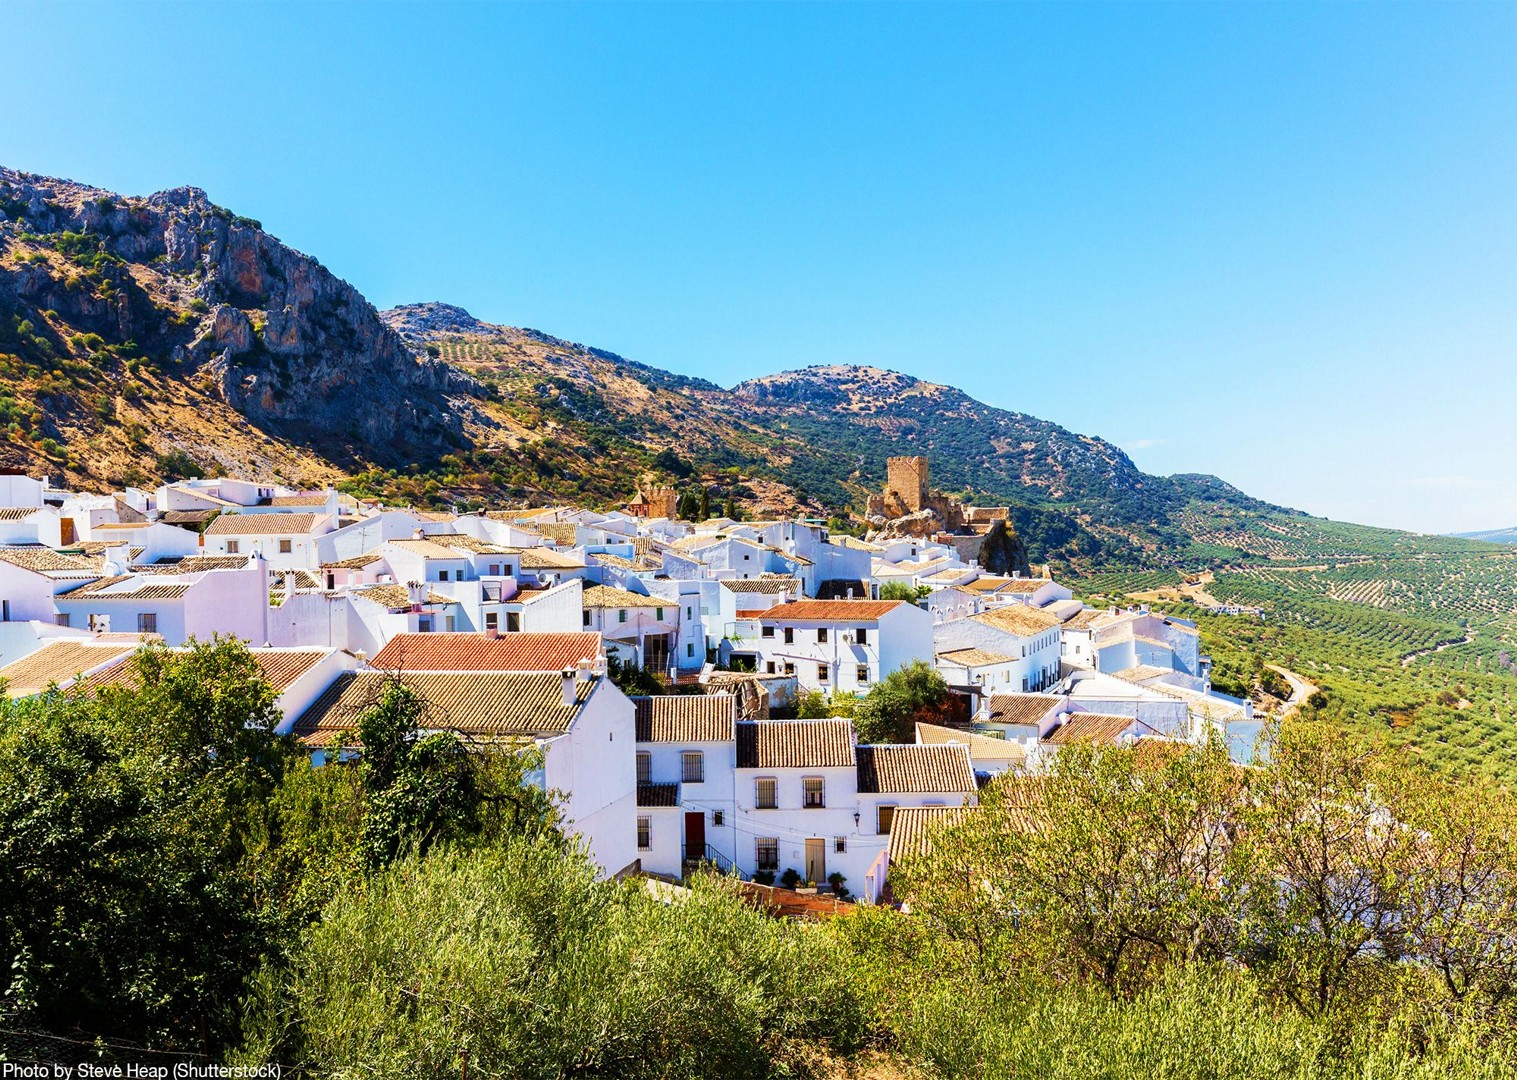 visit-grazalema-town-limestone-mountains-cycling-holiday.jpg - Southern Spain - Andalucia - Los Pueblos Blancos - Guided Road Cycling Holiday - Road Cycling